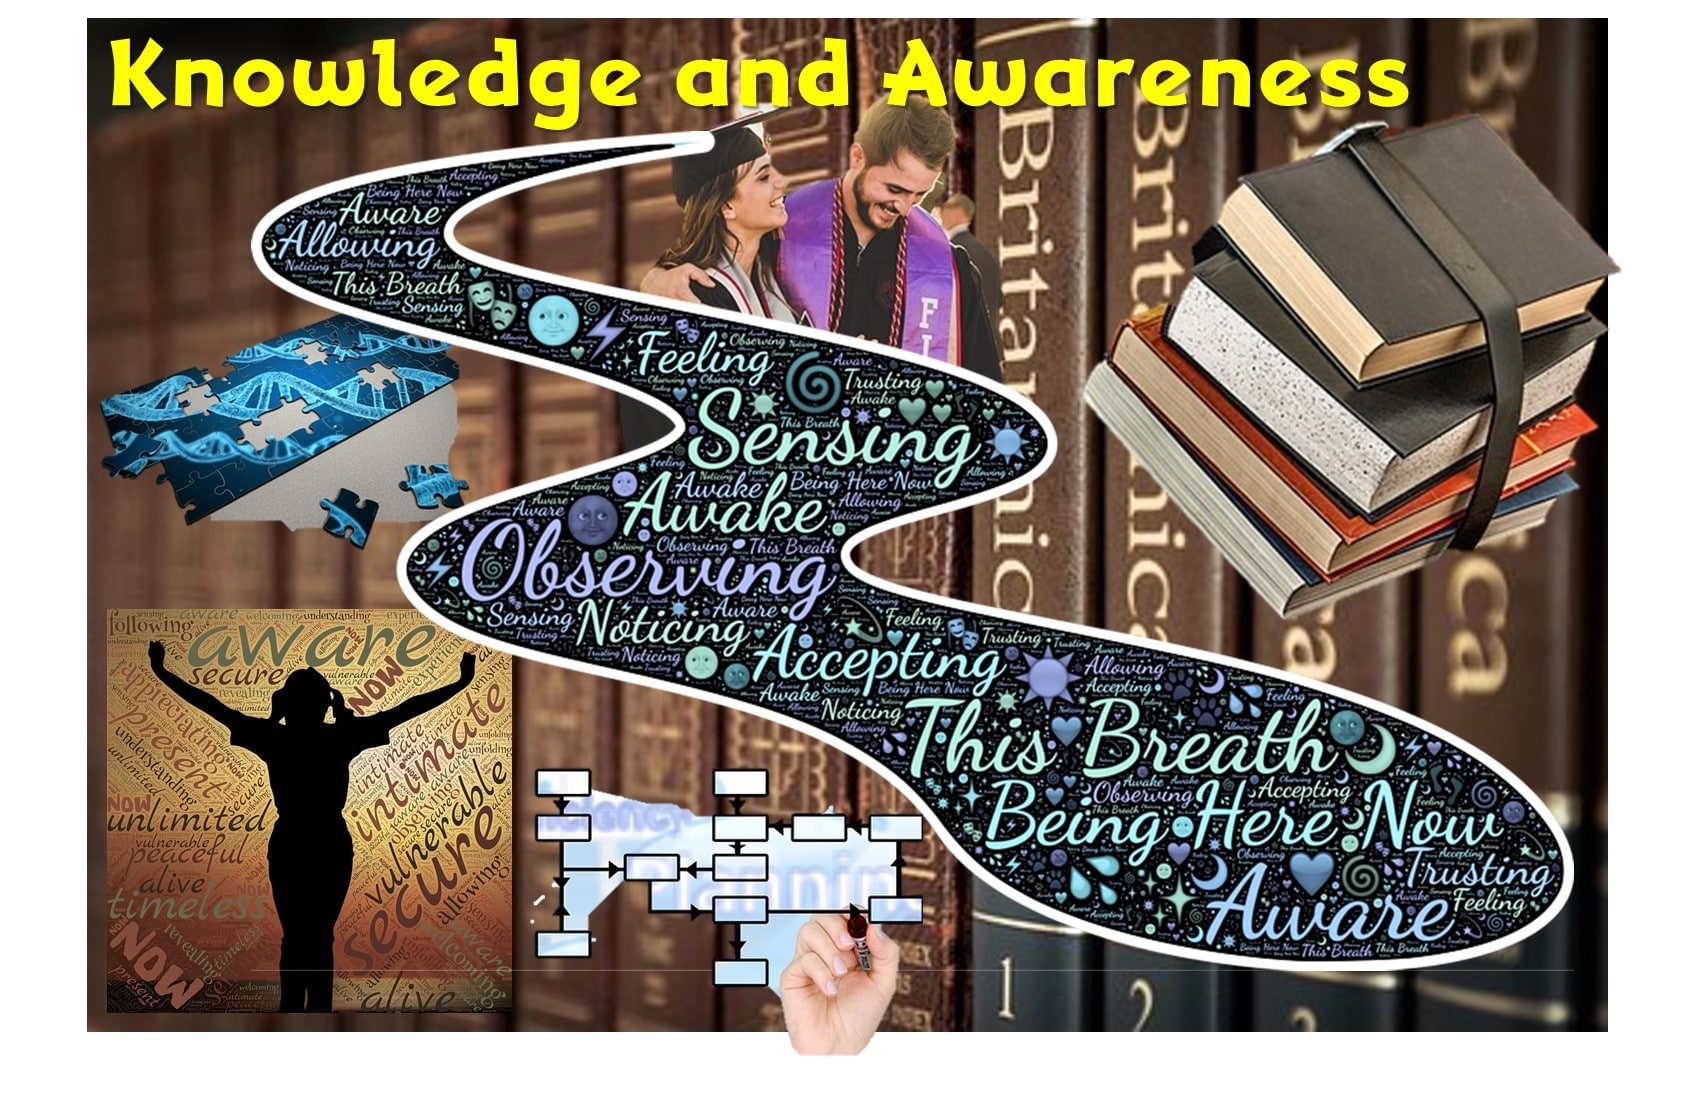 Knowledge and Awareness